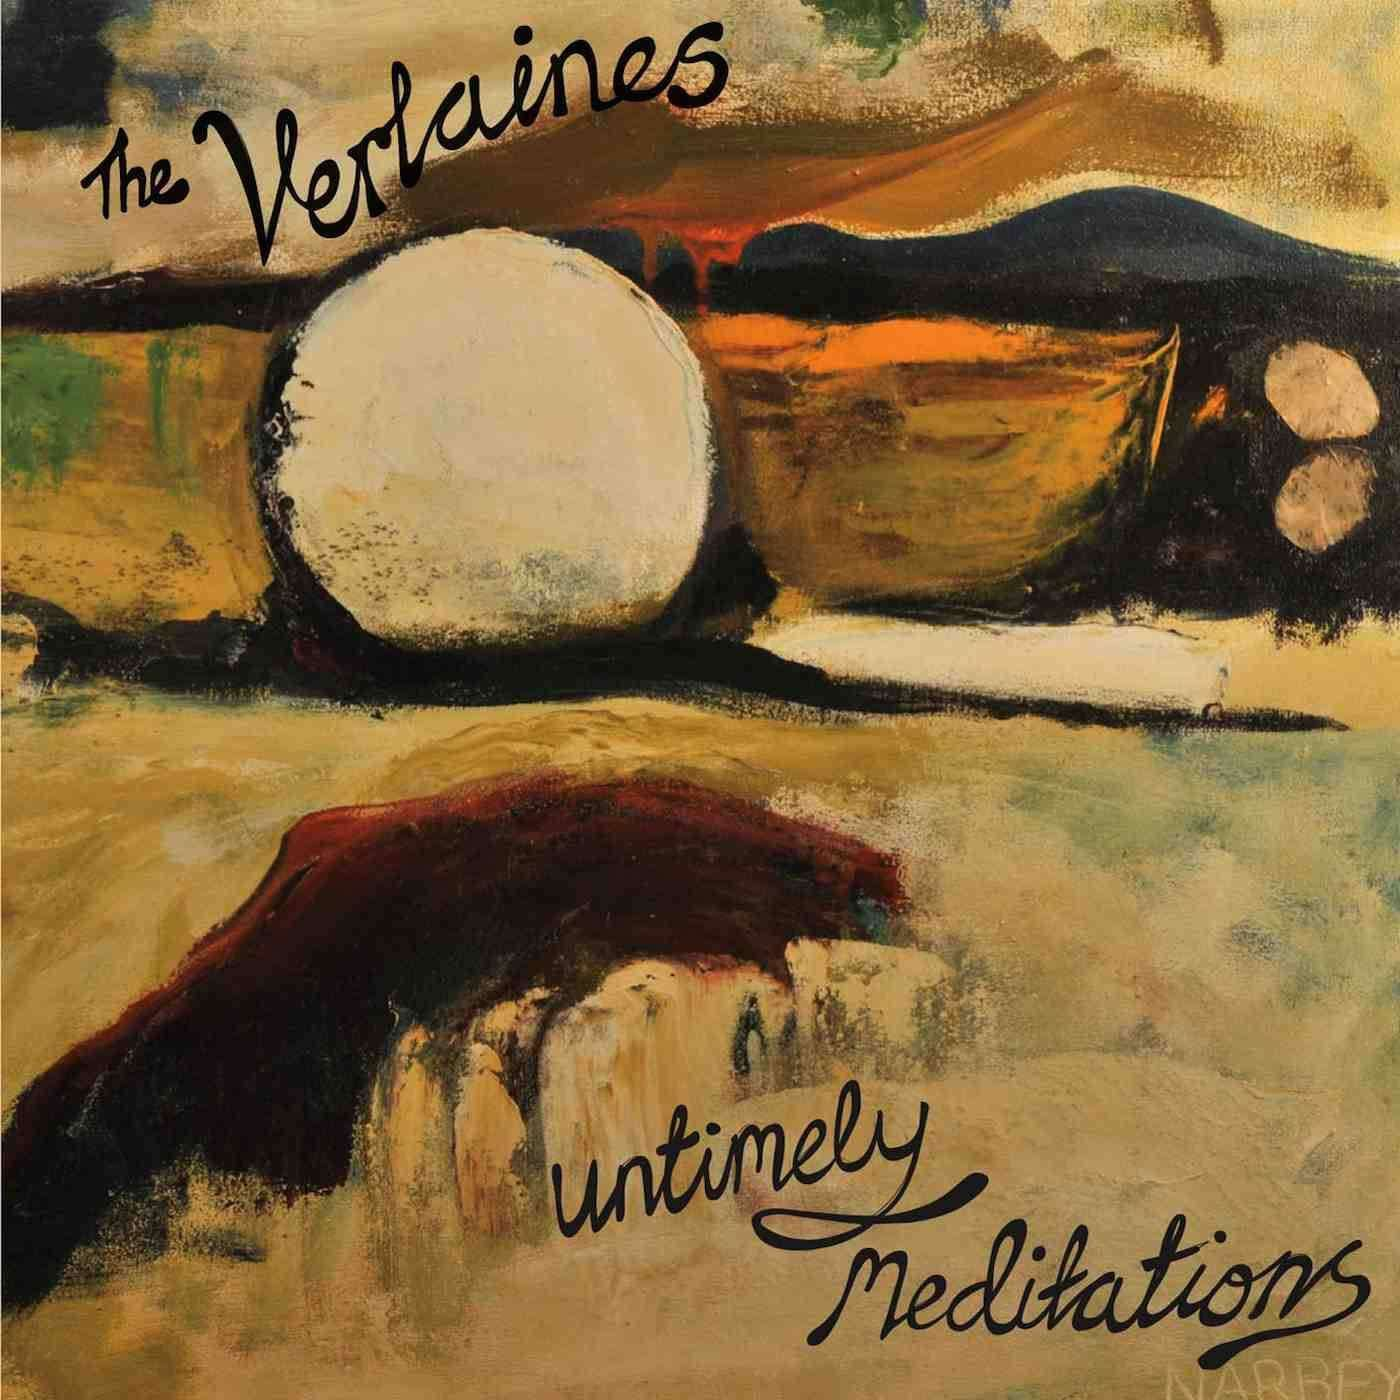 The Verlaines - Untimely Meditations (2012)